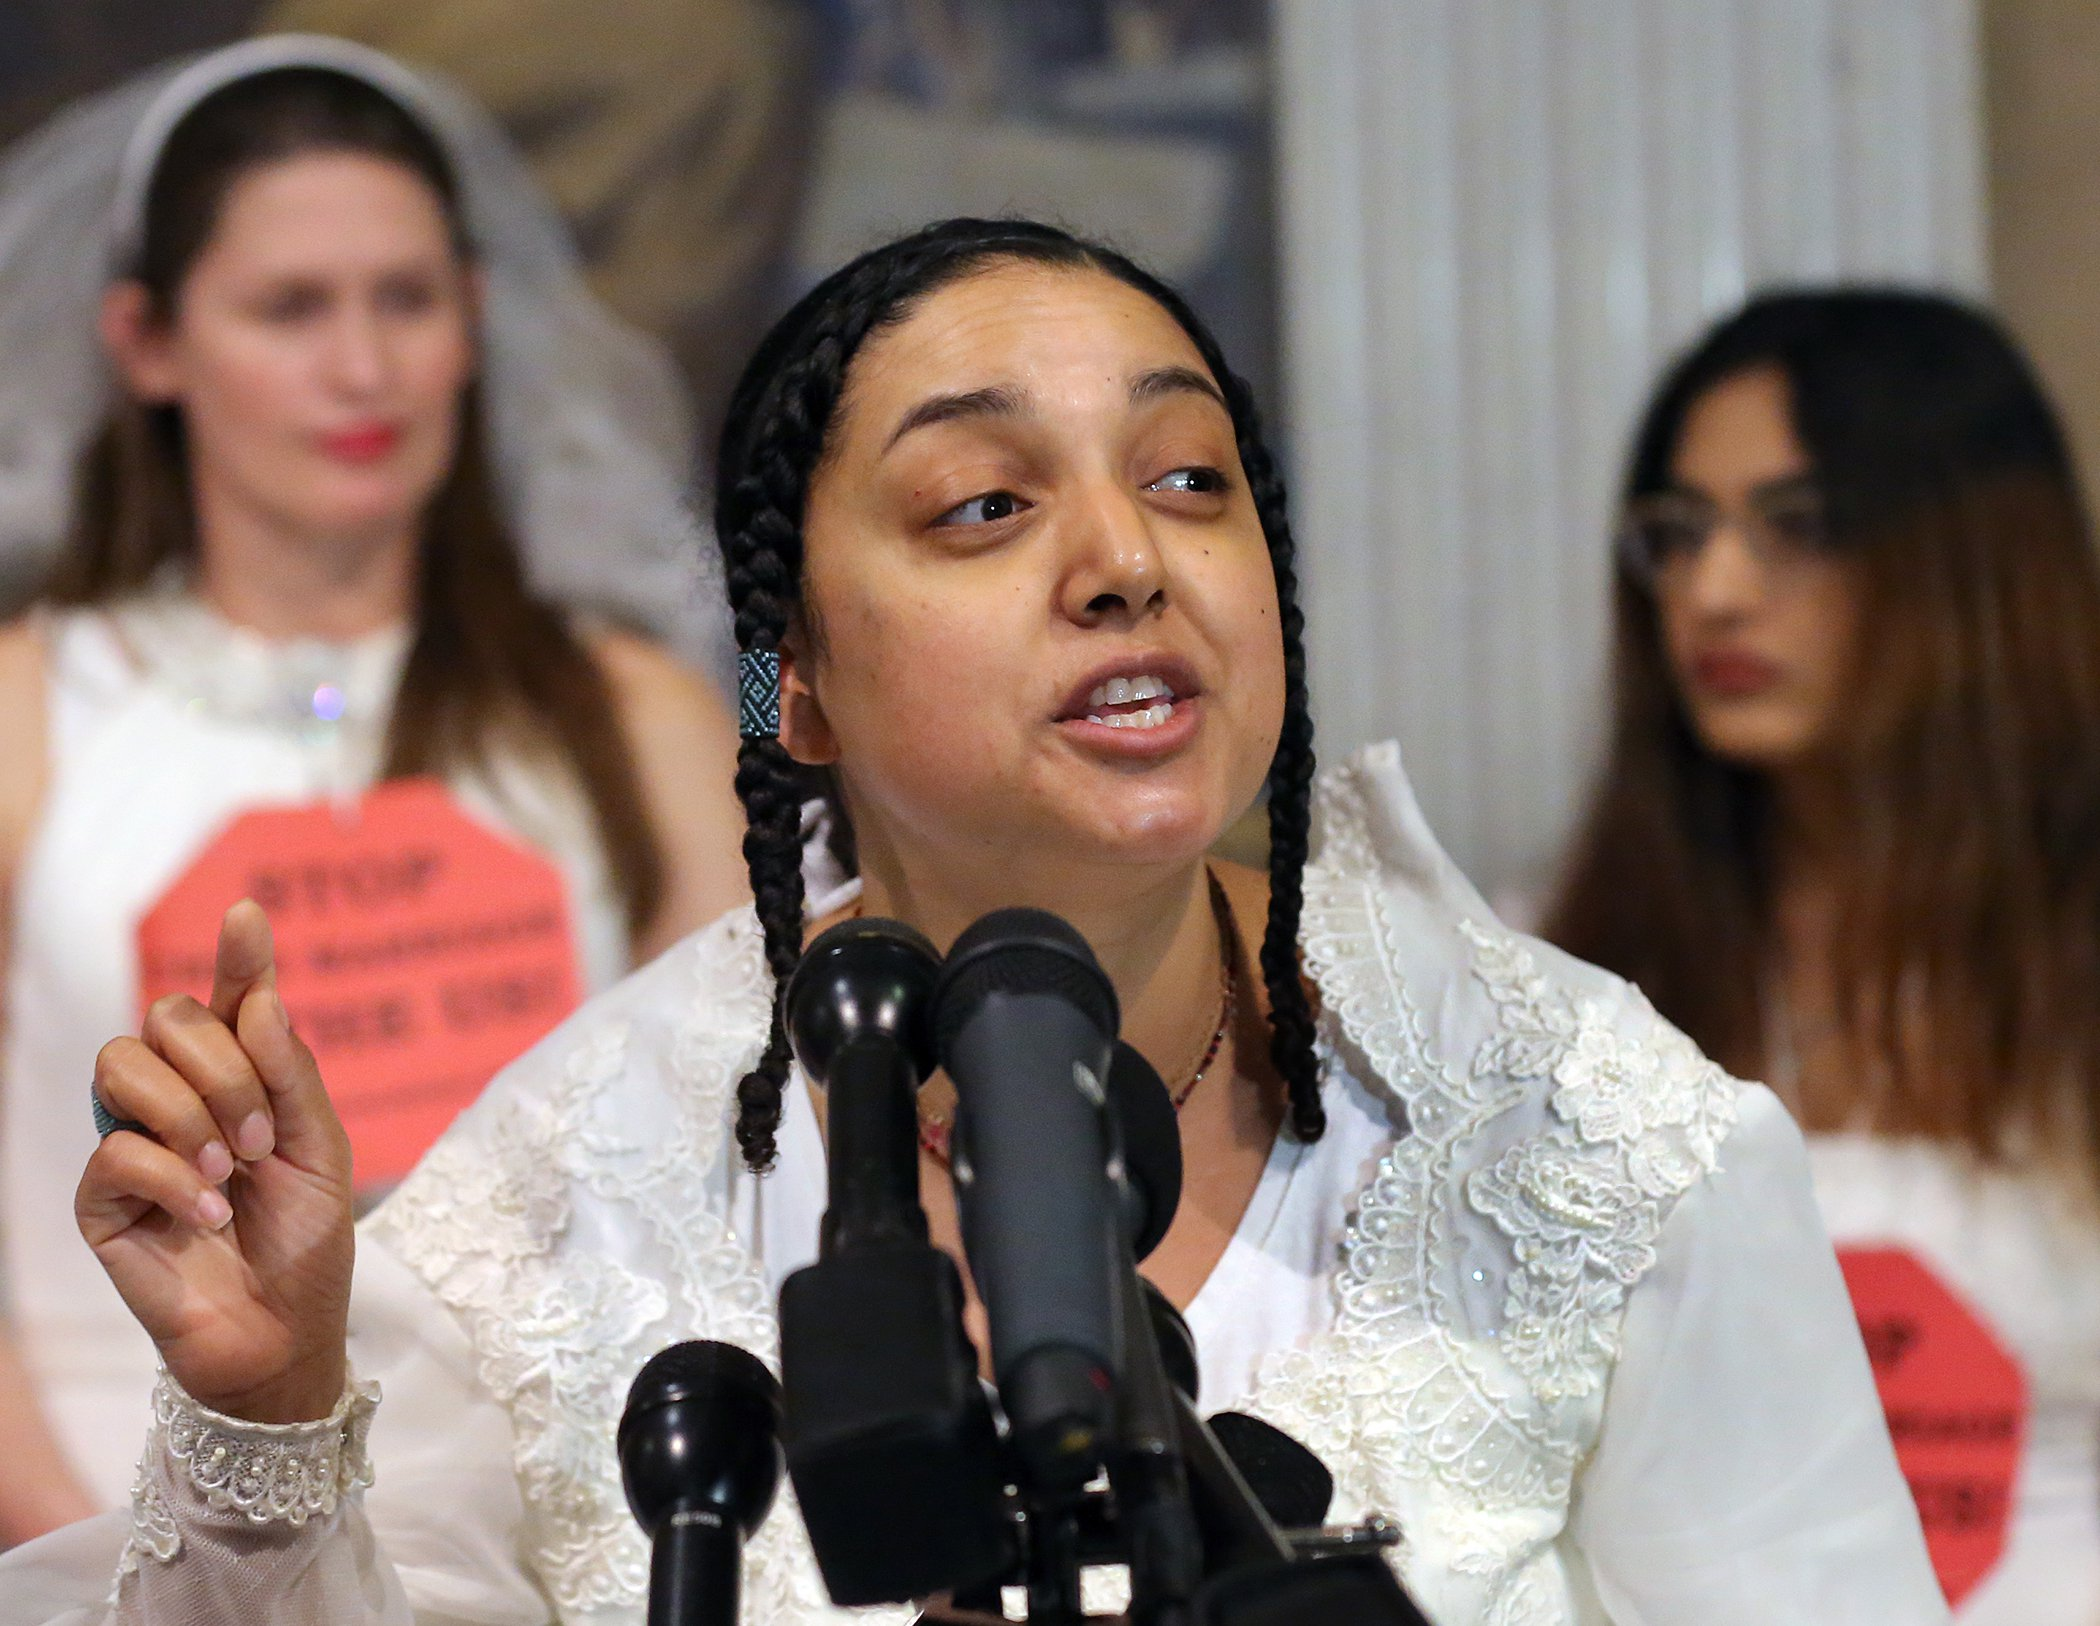 Child-Marriage-United-States-Massachusetts-Tammy-Monteiro.jpg